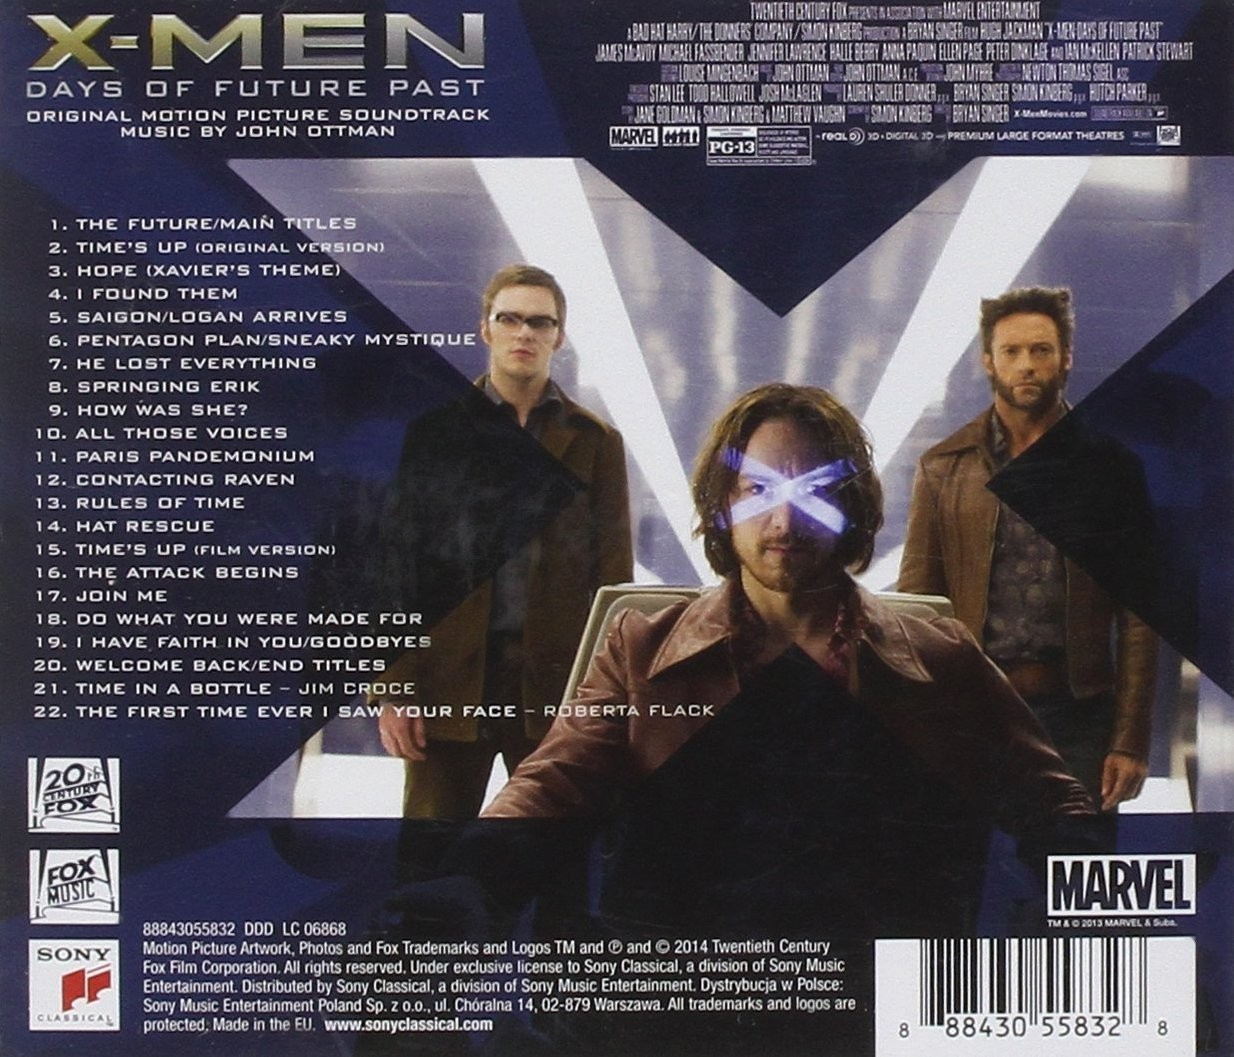 film music site - x-men: days of future past soundtrack (john ottman